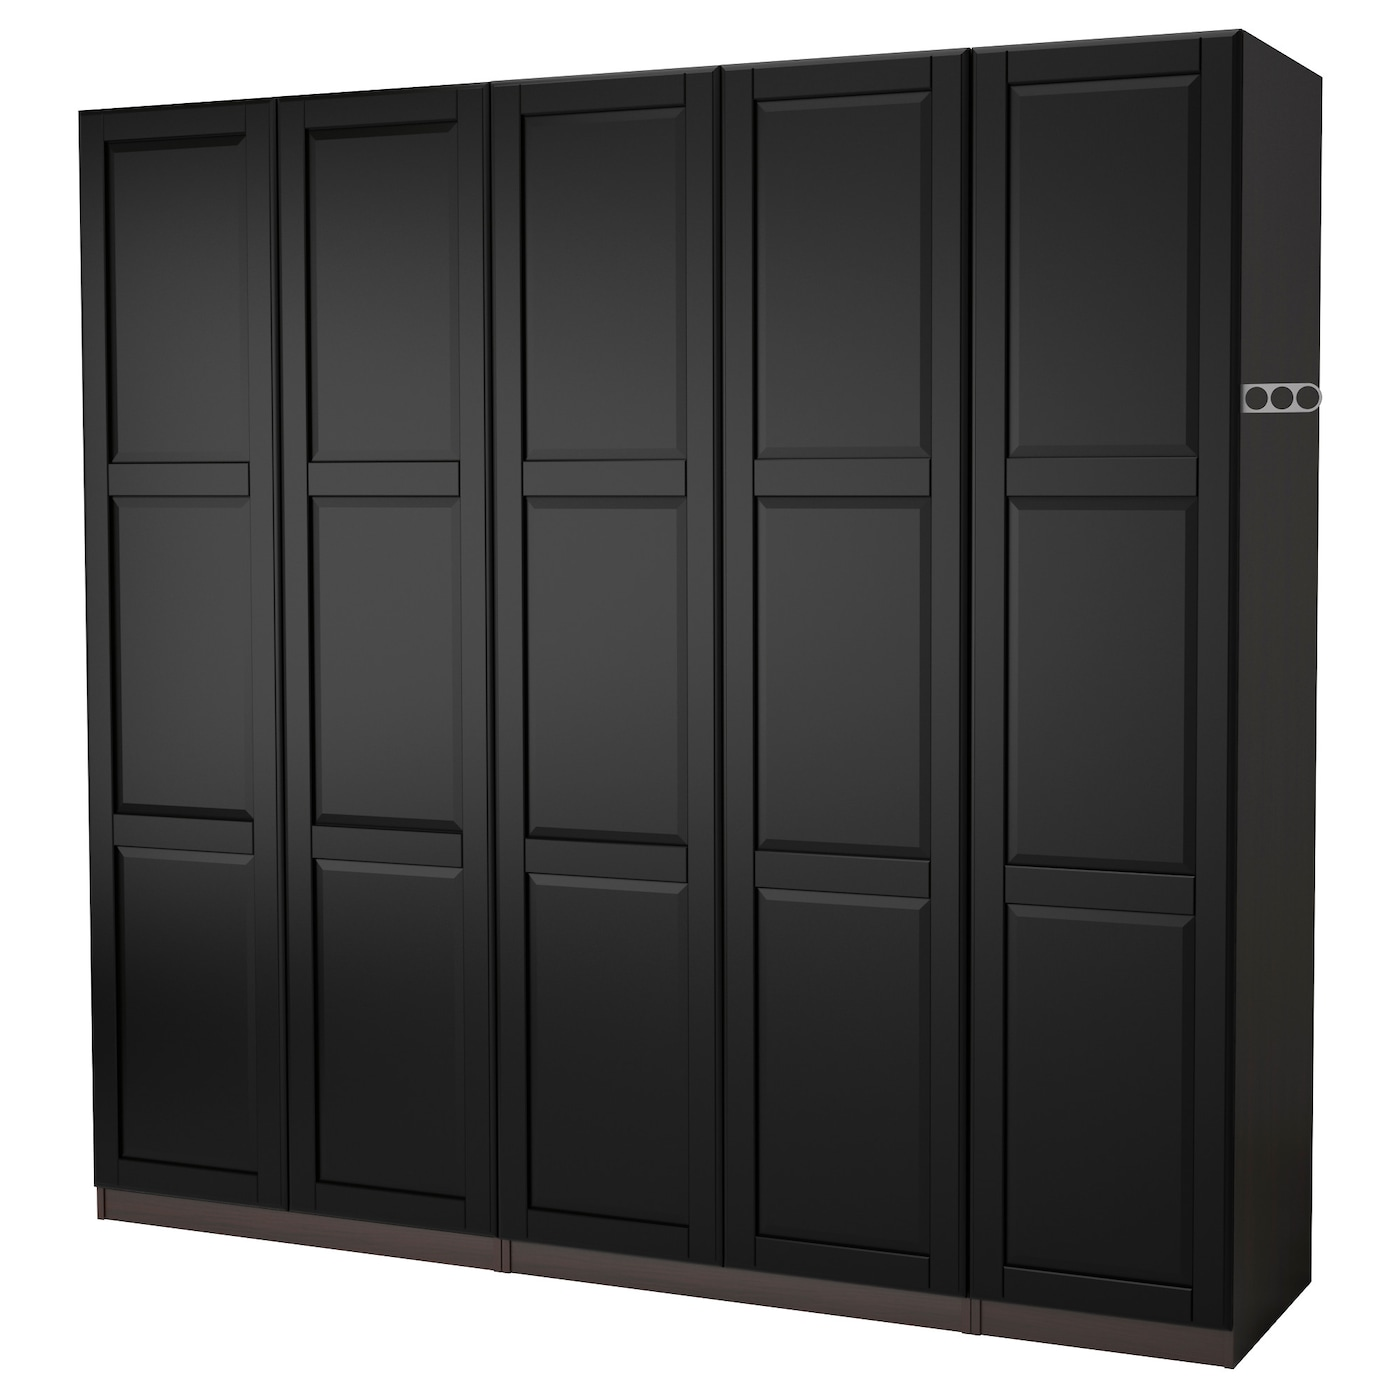 pax wardrobe black brown undredal black 250x60x201 cm ikea. Black Bedroom Furniture Sets. Home Design Ideas